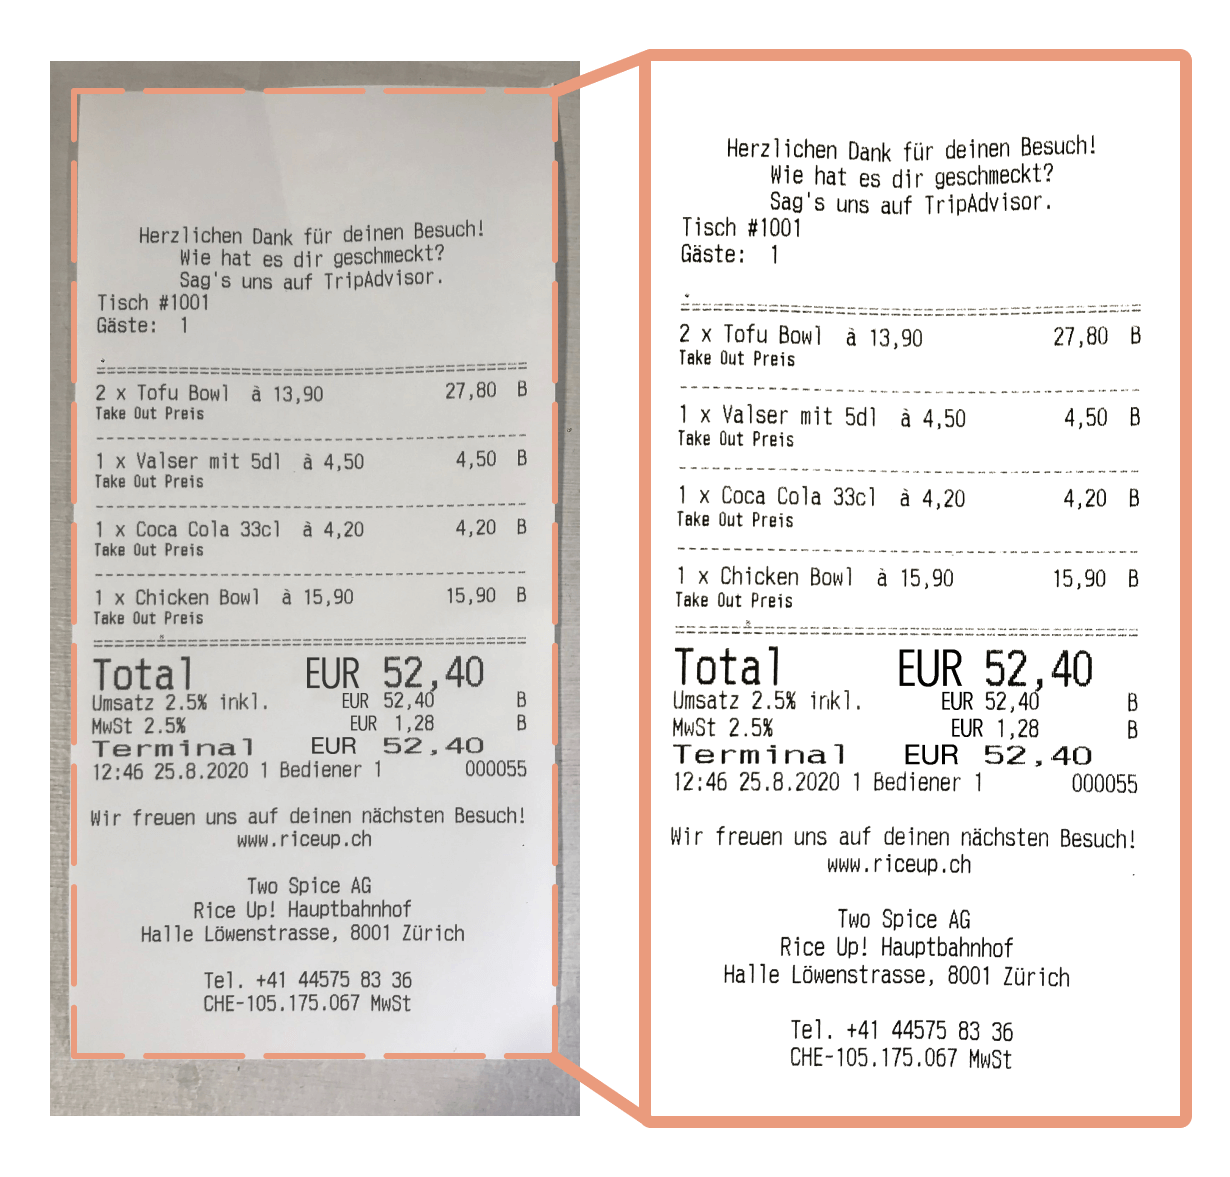 Step 1 of image processing: The receipt is scanned and recognized by AI